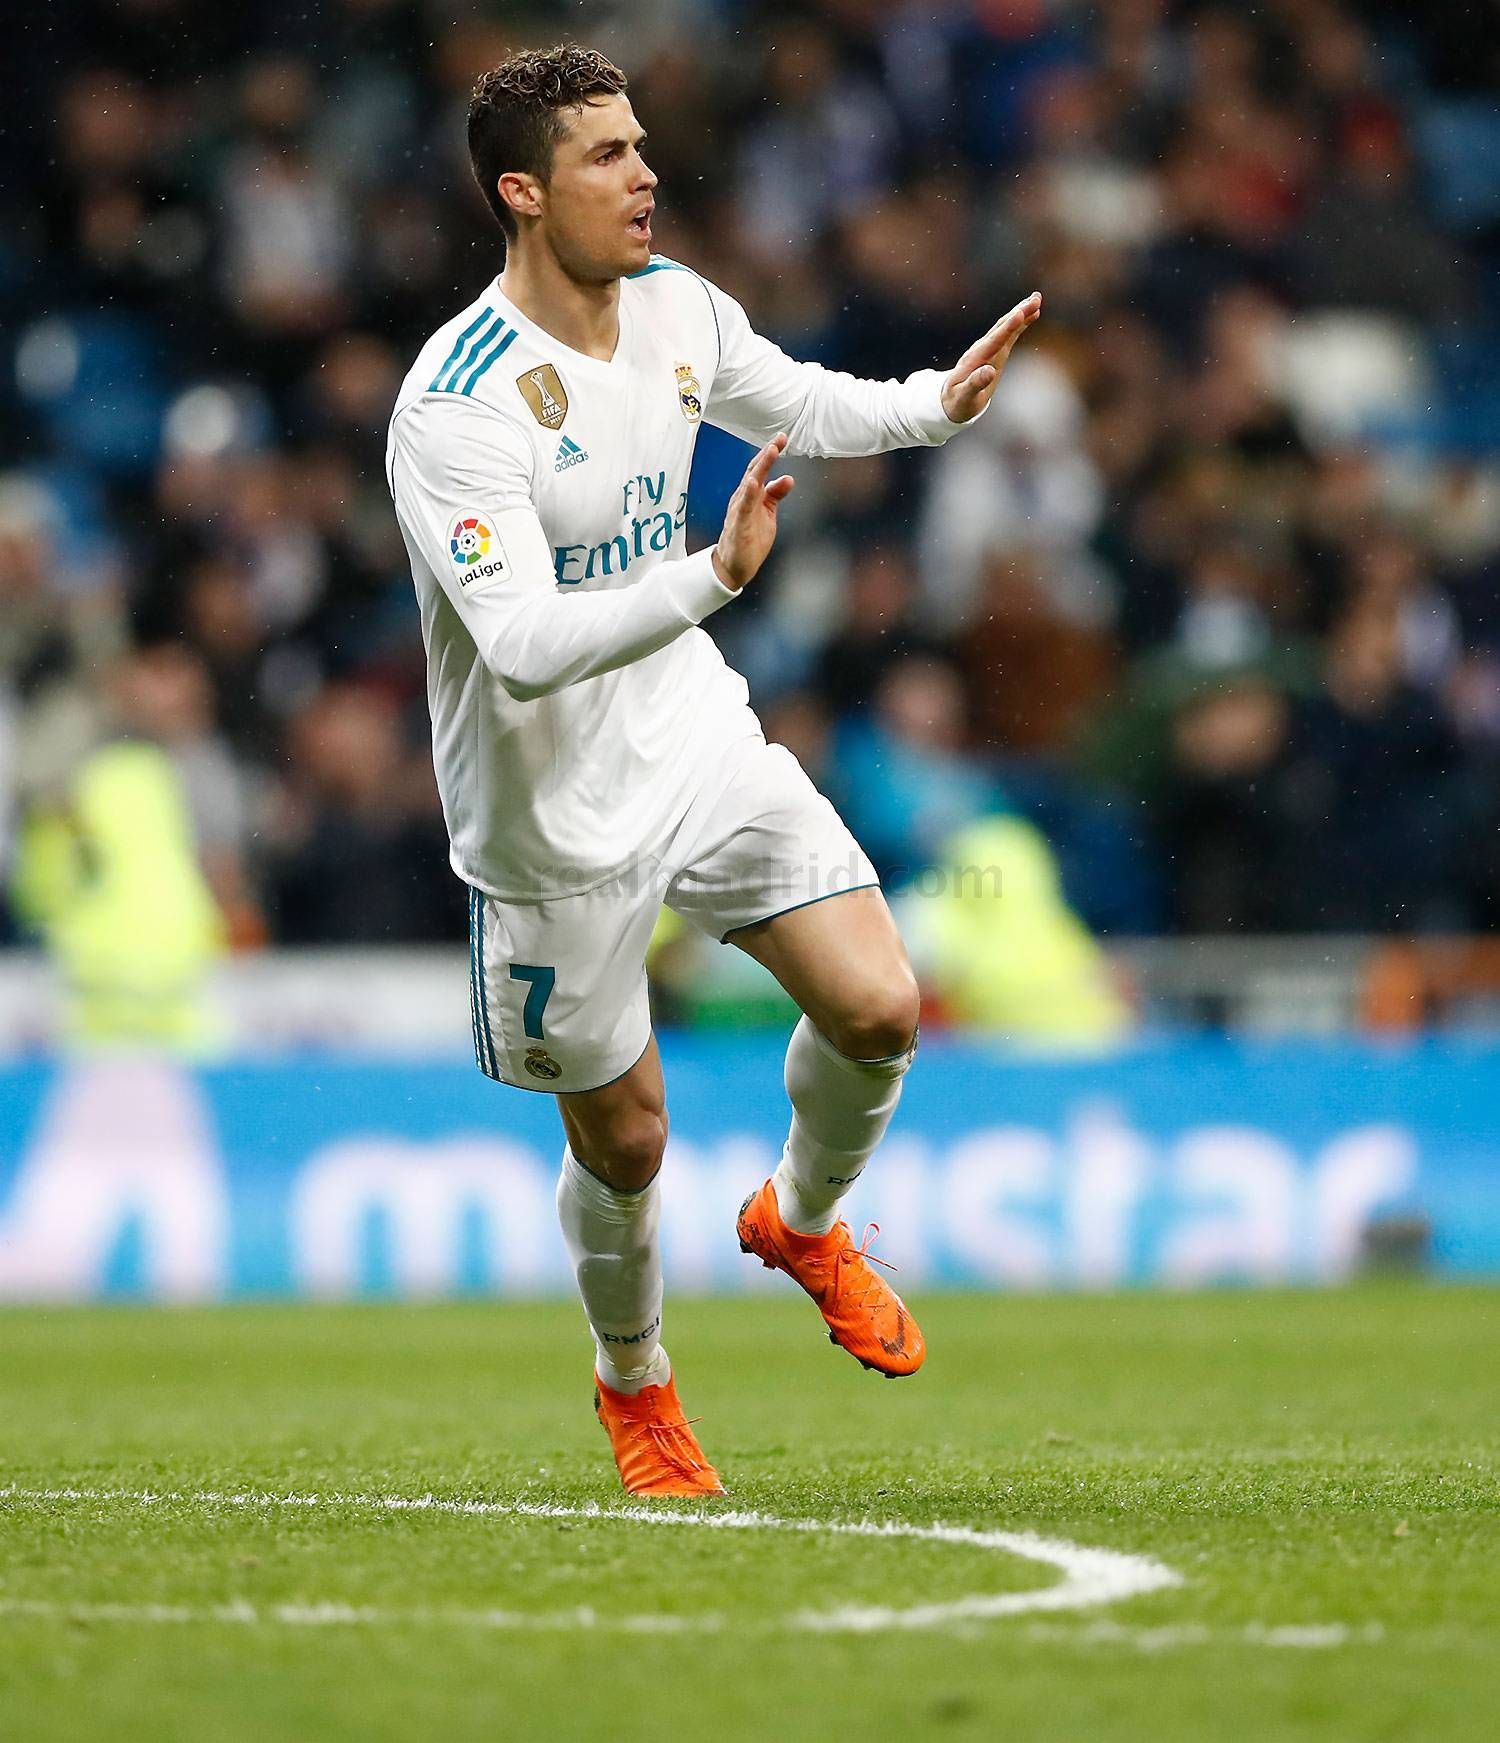 Real Madrid Getafe 3 1 Victory Over Getafe As Attentions Turn To The Champions League Cristino Ronaldo Cristano Ronaldo Cristoano Ronaldo